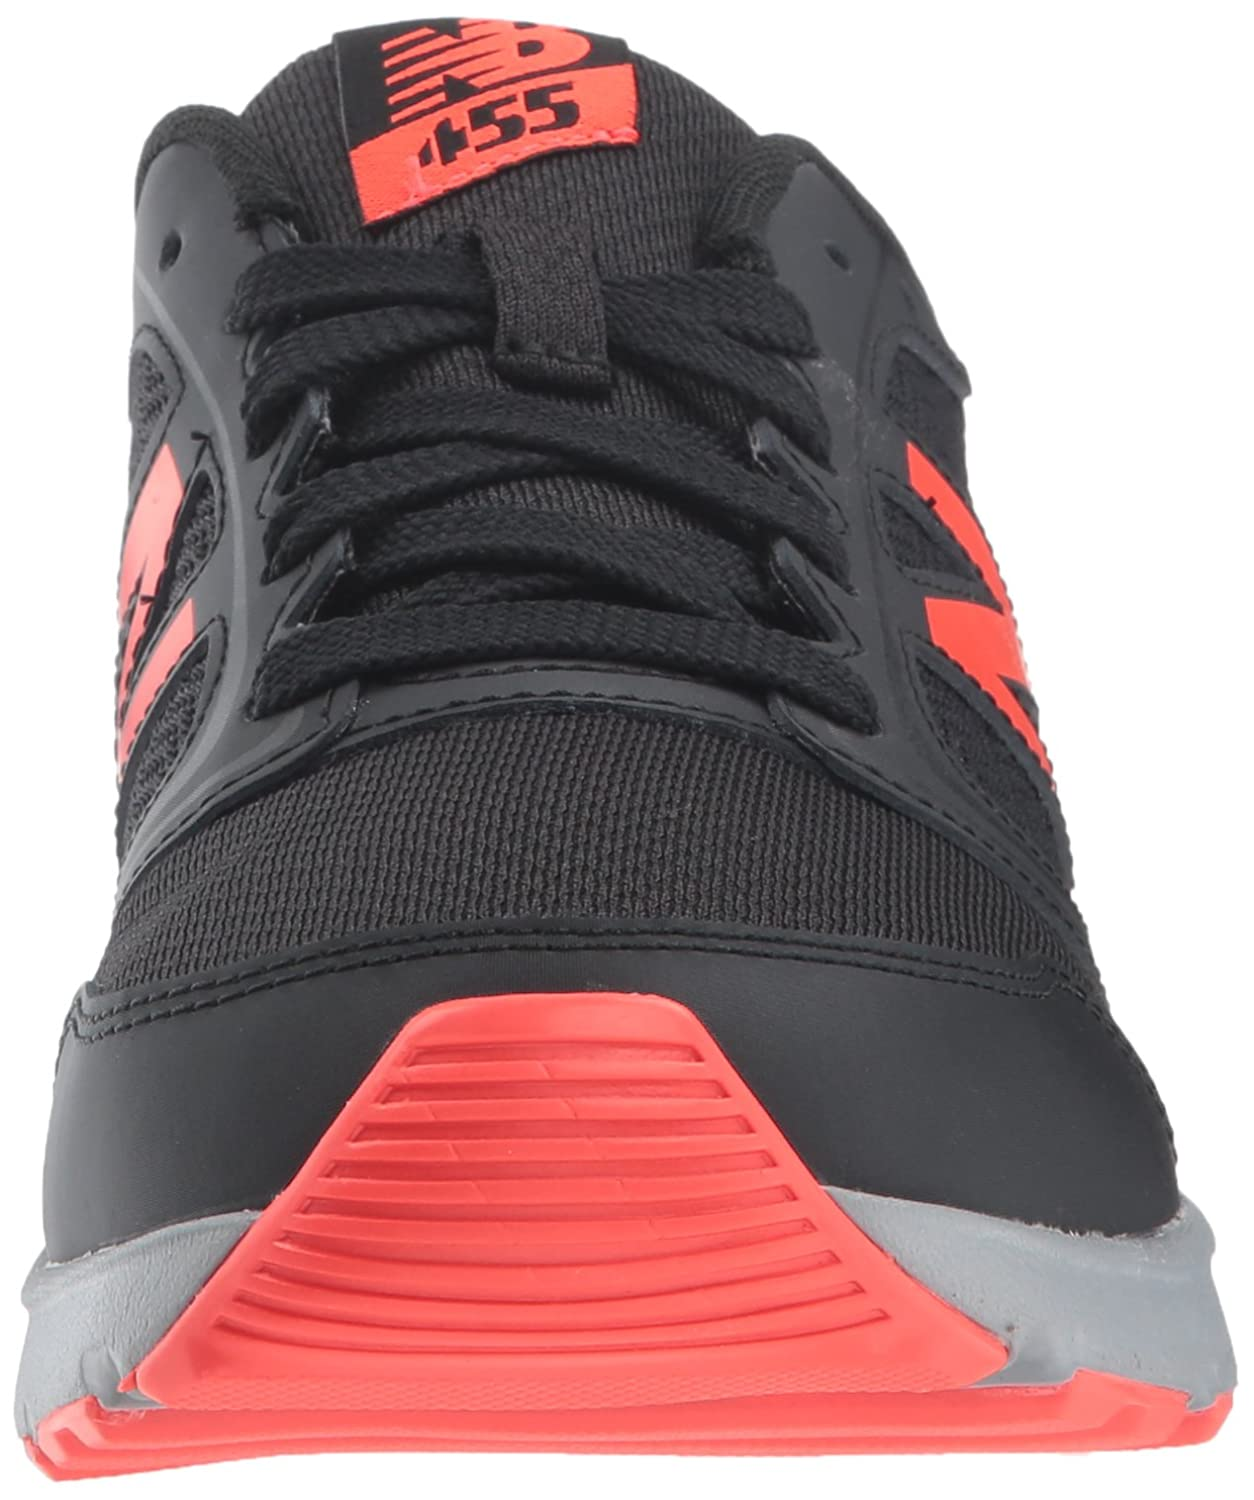 New Balance 455v1 Running Shoe